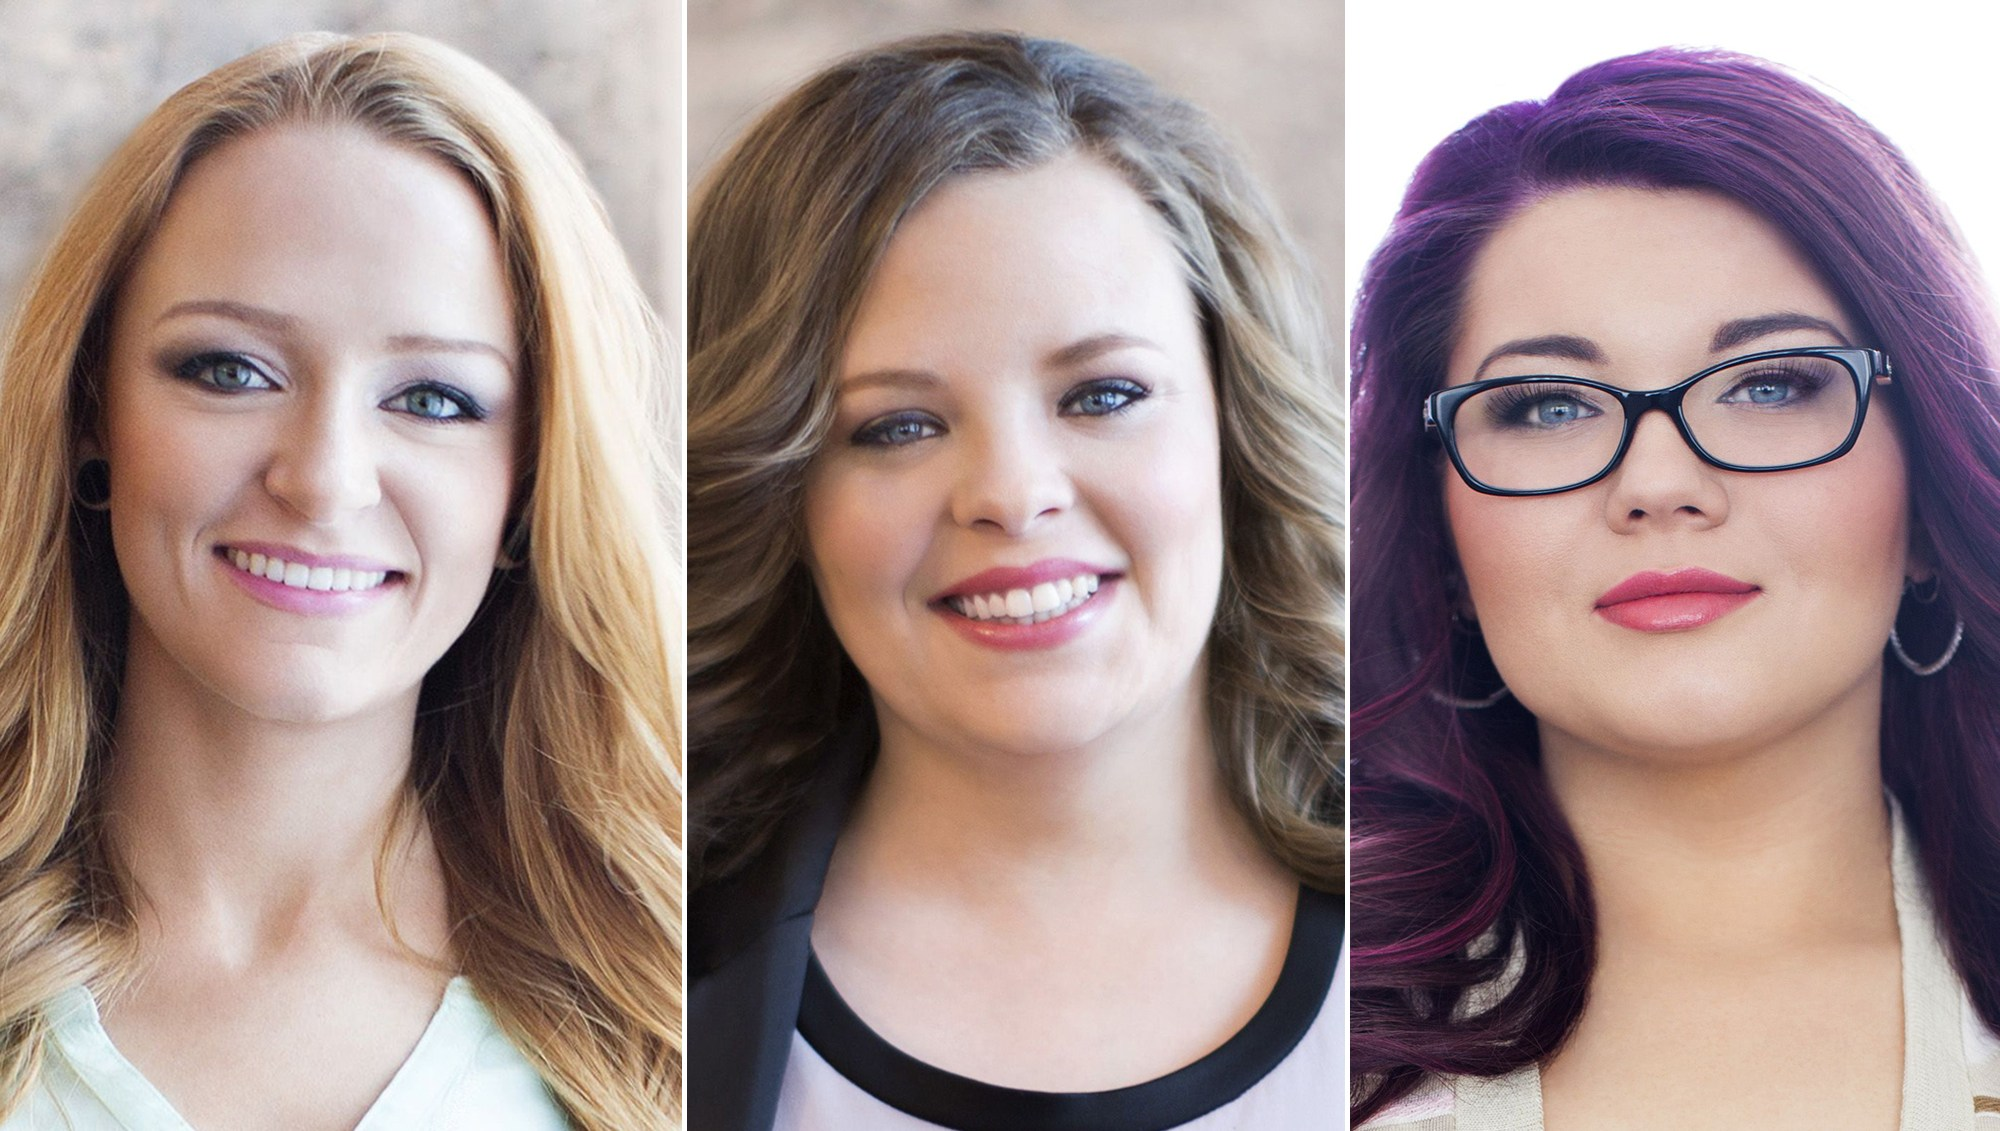 Inside Maci Bookout, Catelynn Lowell and Amber Portwood's First Day With 'Teen Mom OG' Costars Bristol Palin and Cheyenne Floyd